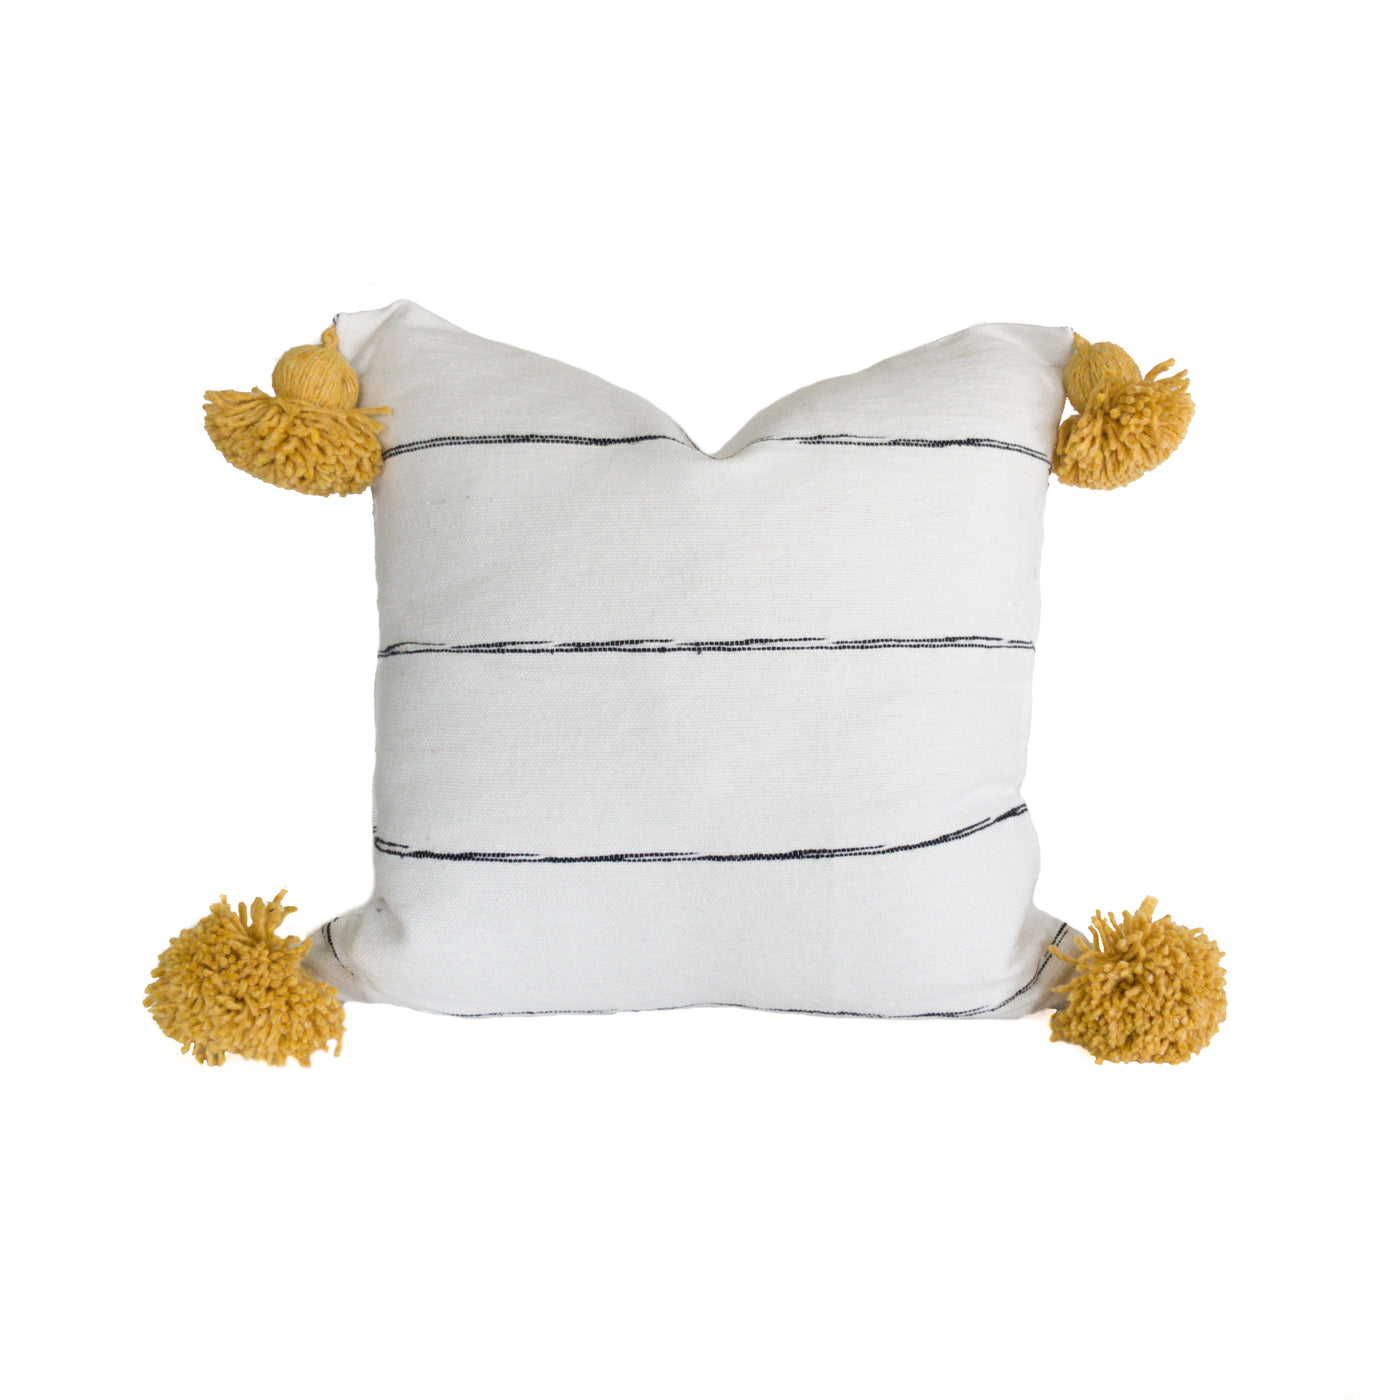 Illi Pillow Cover - Heddle & Lamm